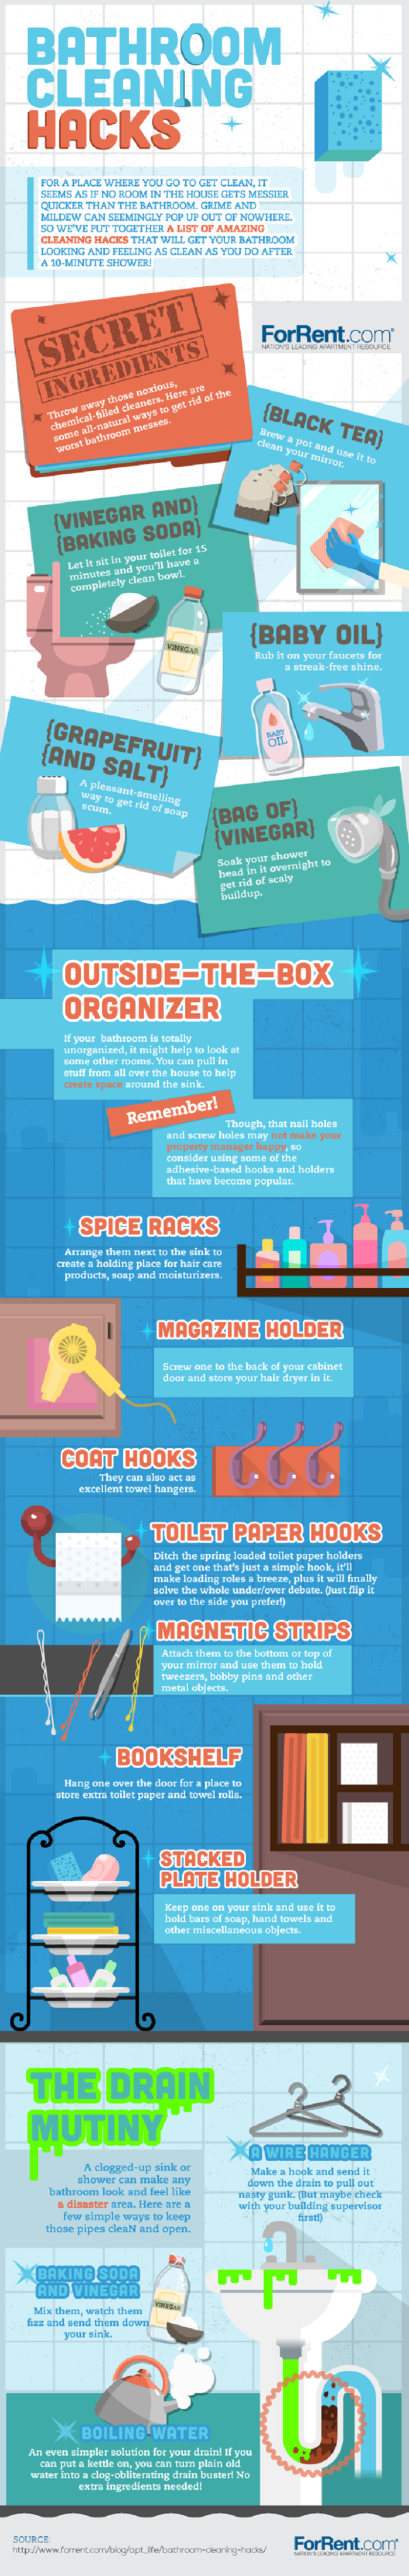 bathroom cleaning hacks infographic